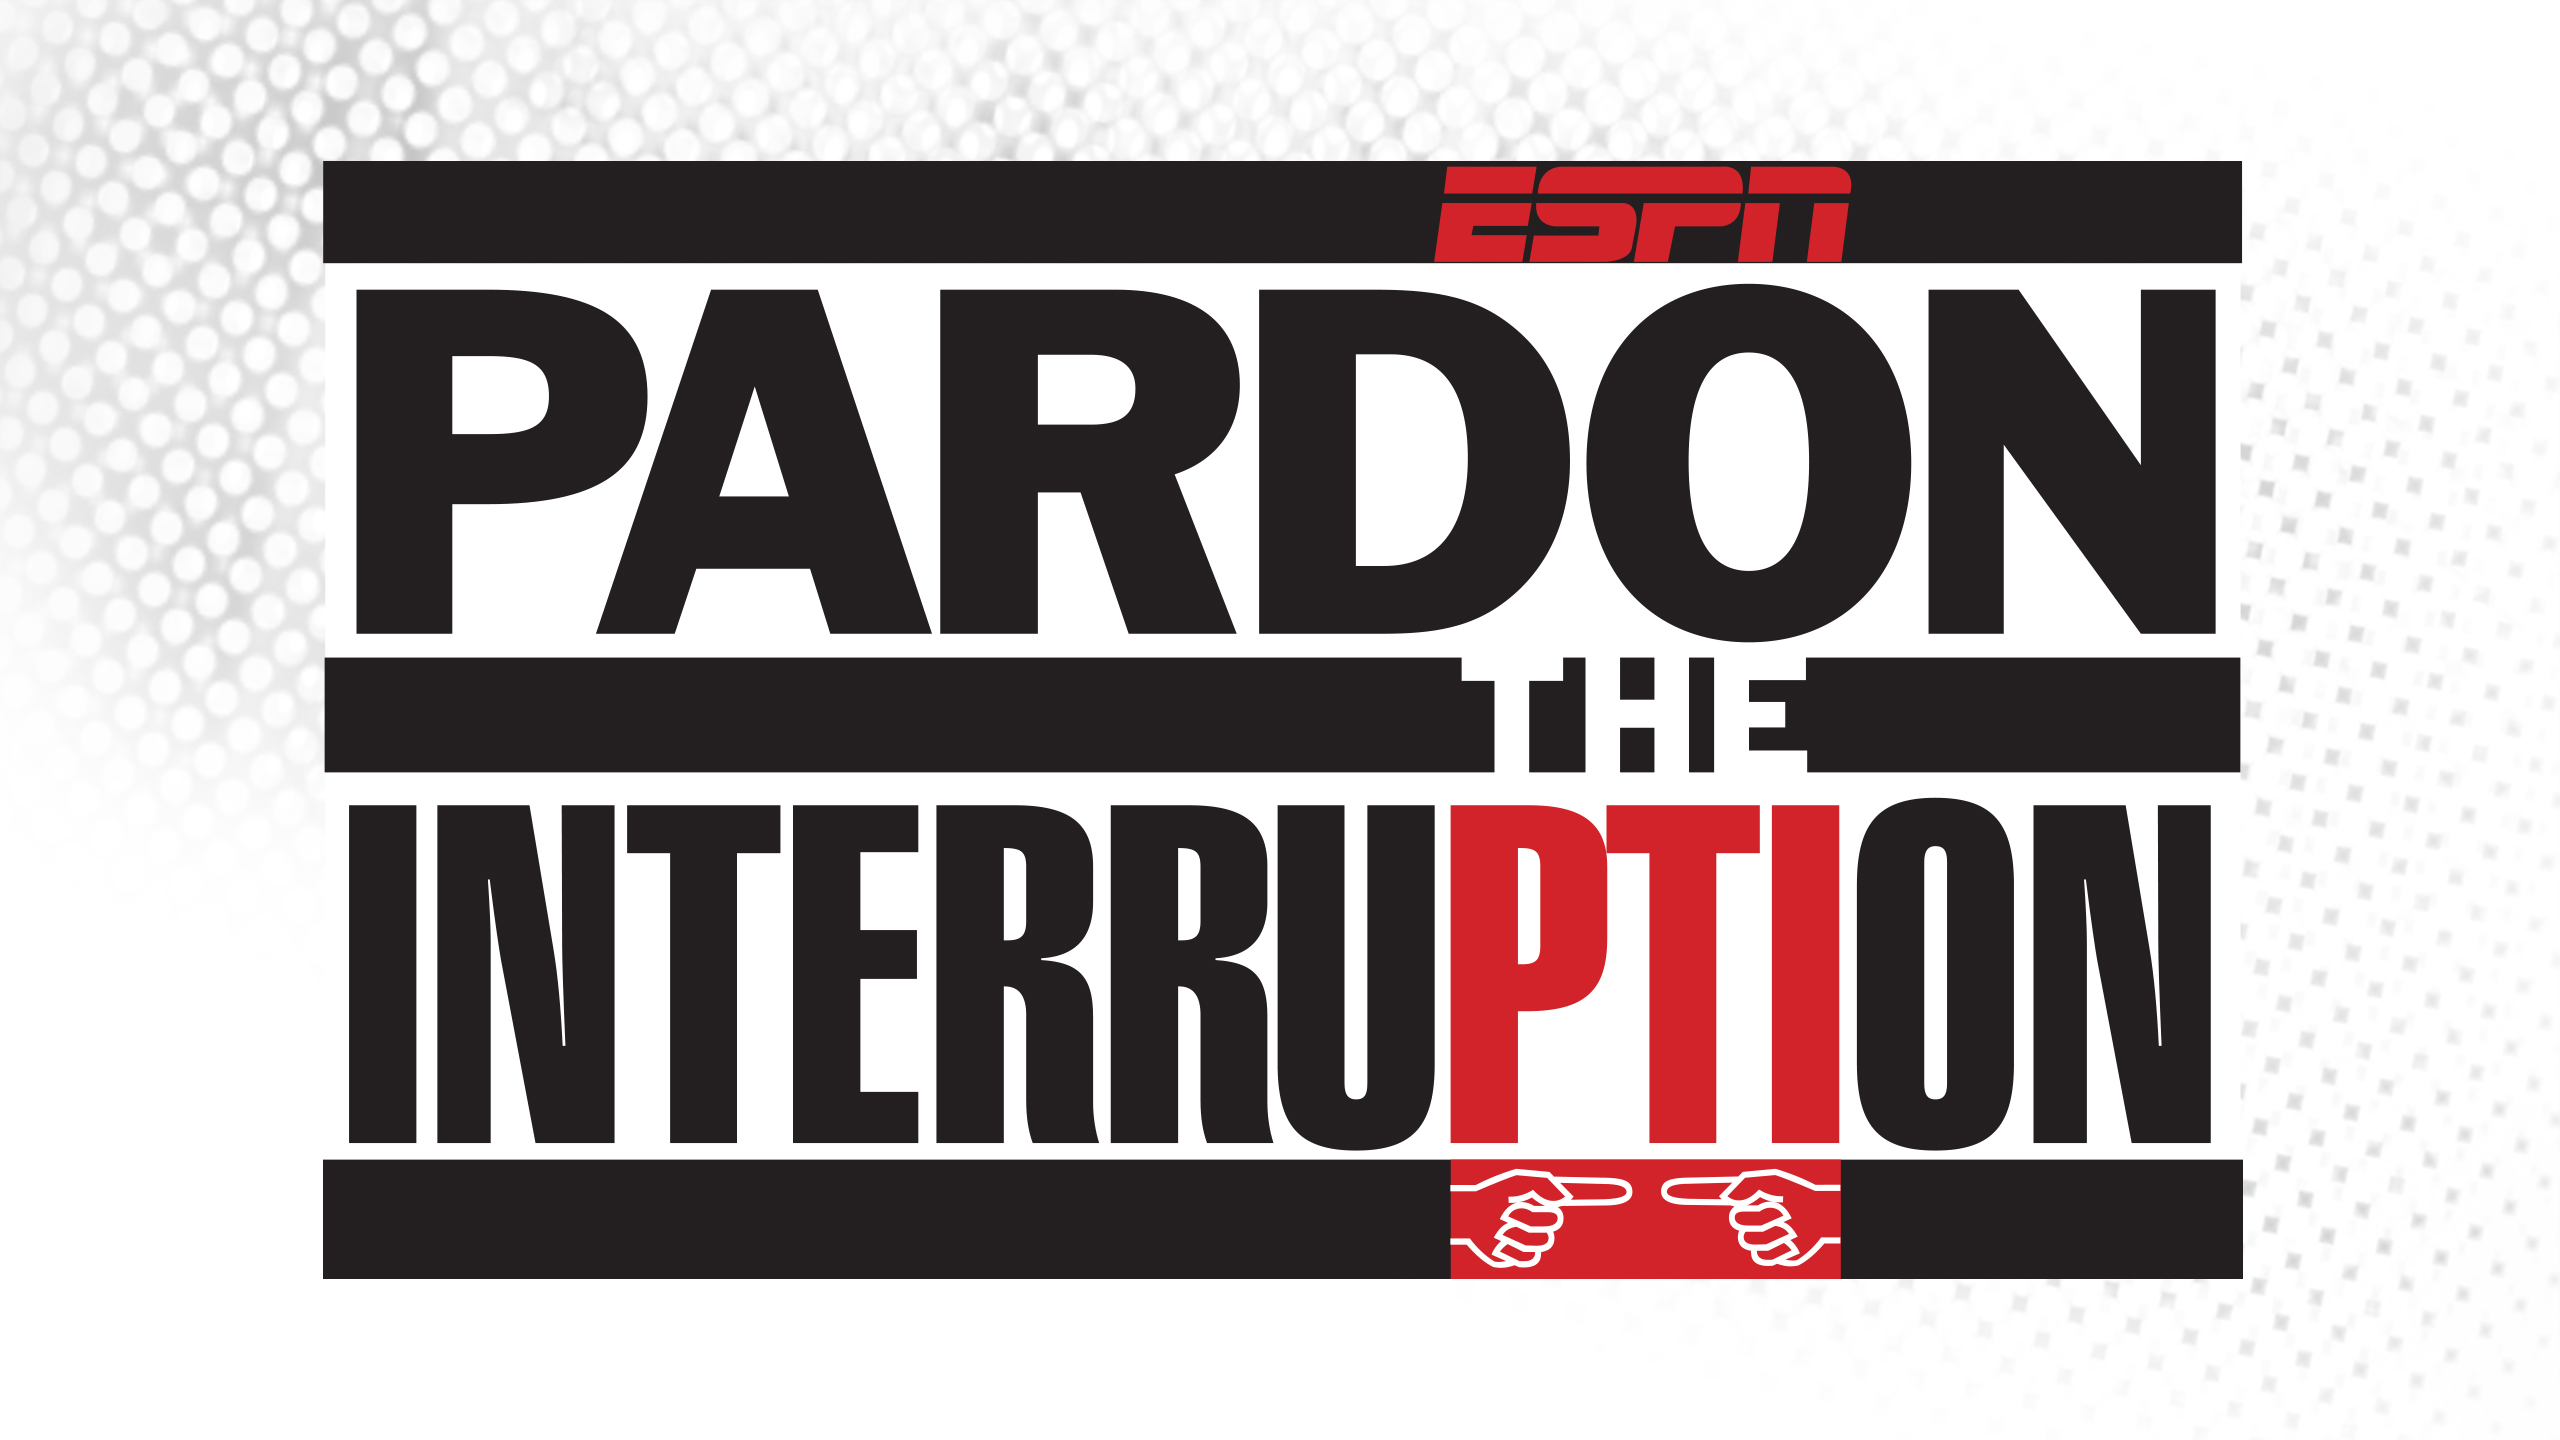 Thu, 12/13 - Pardon The Interruption